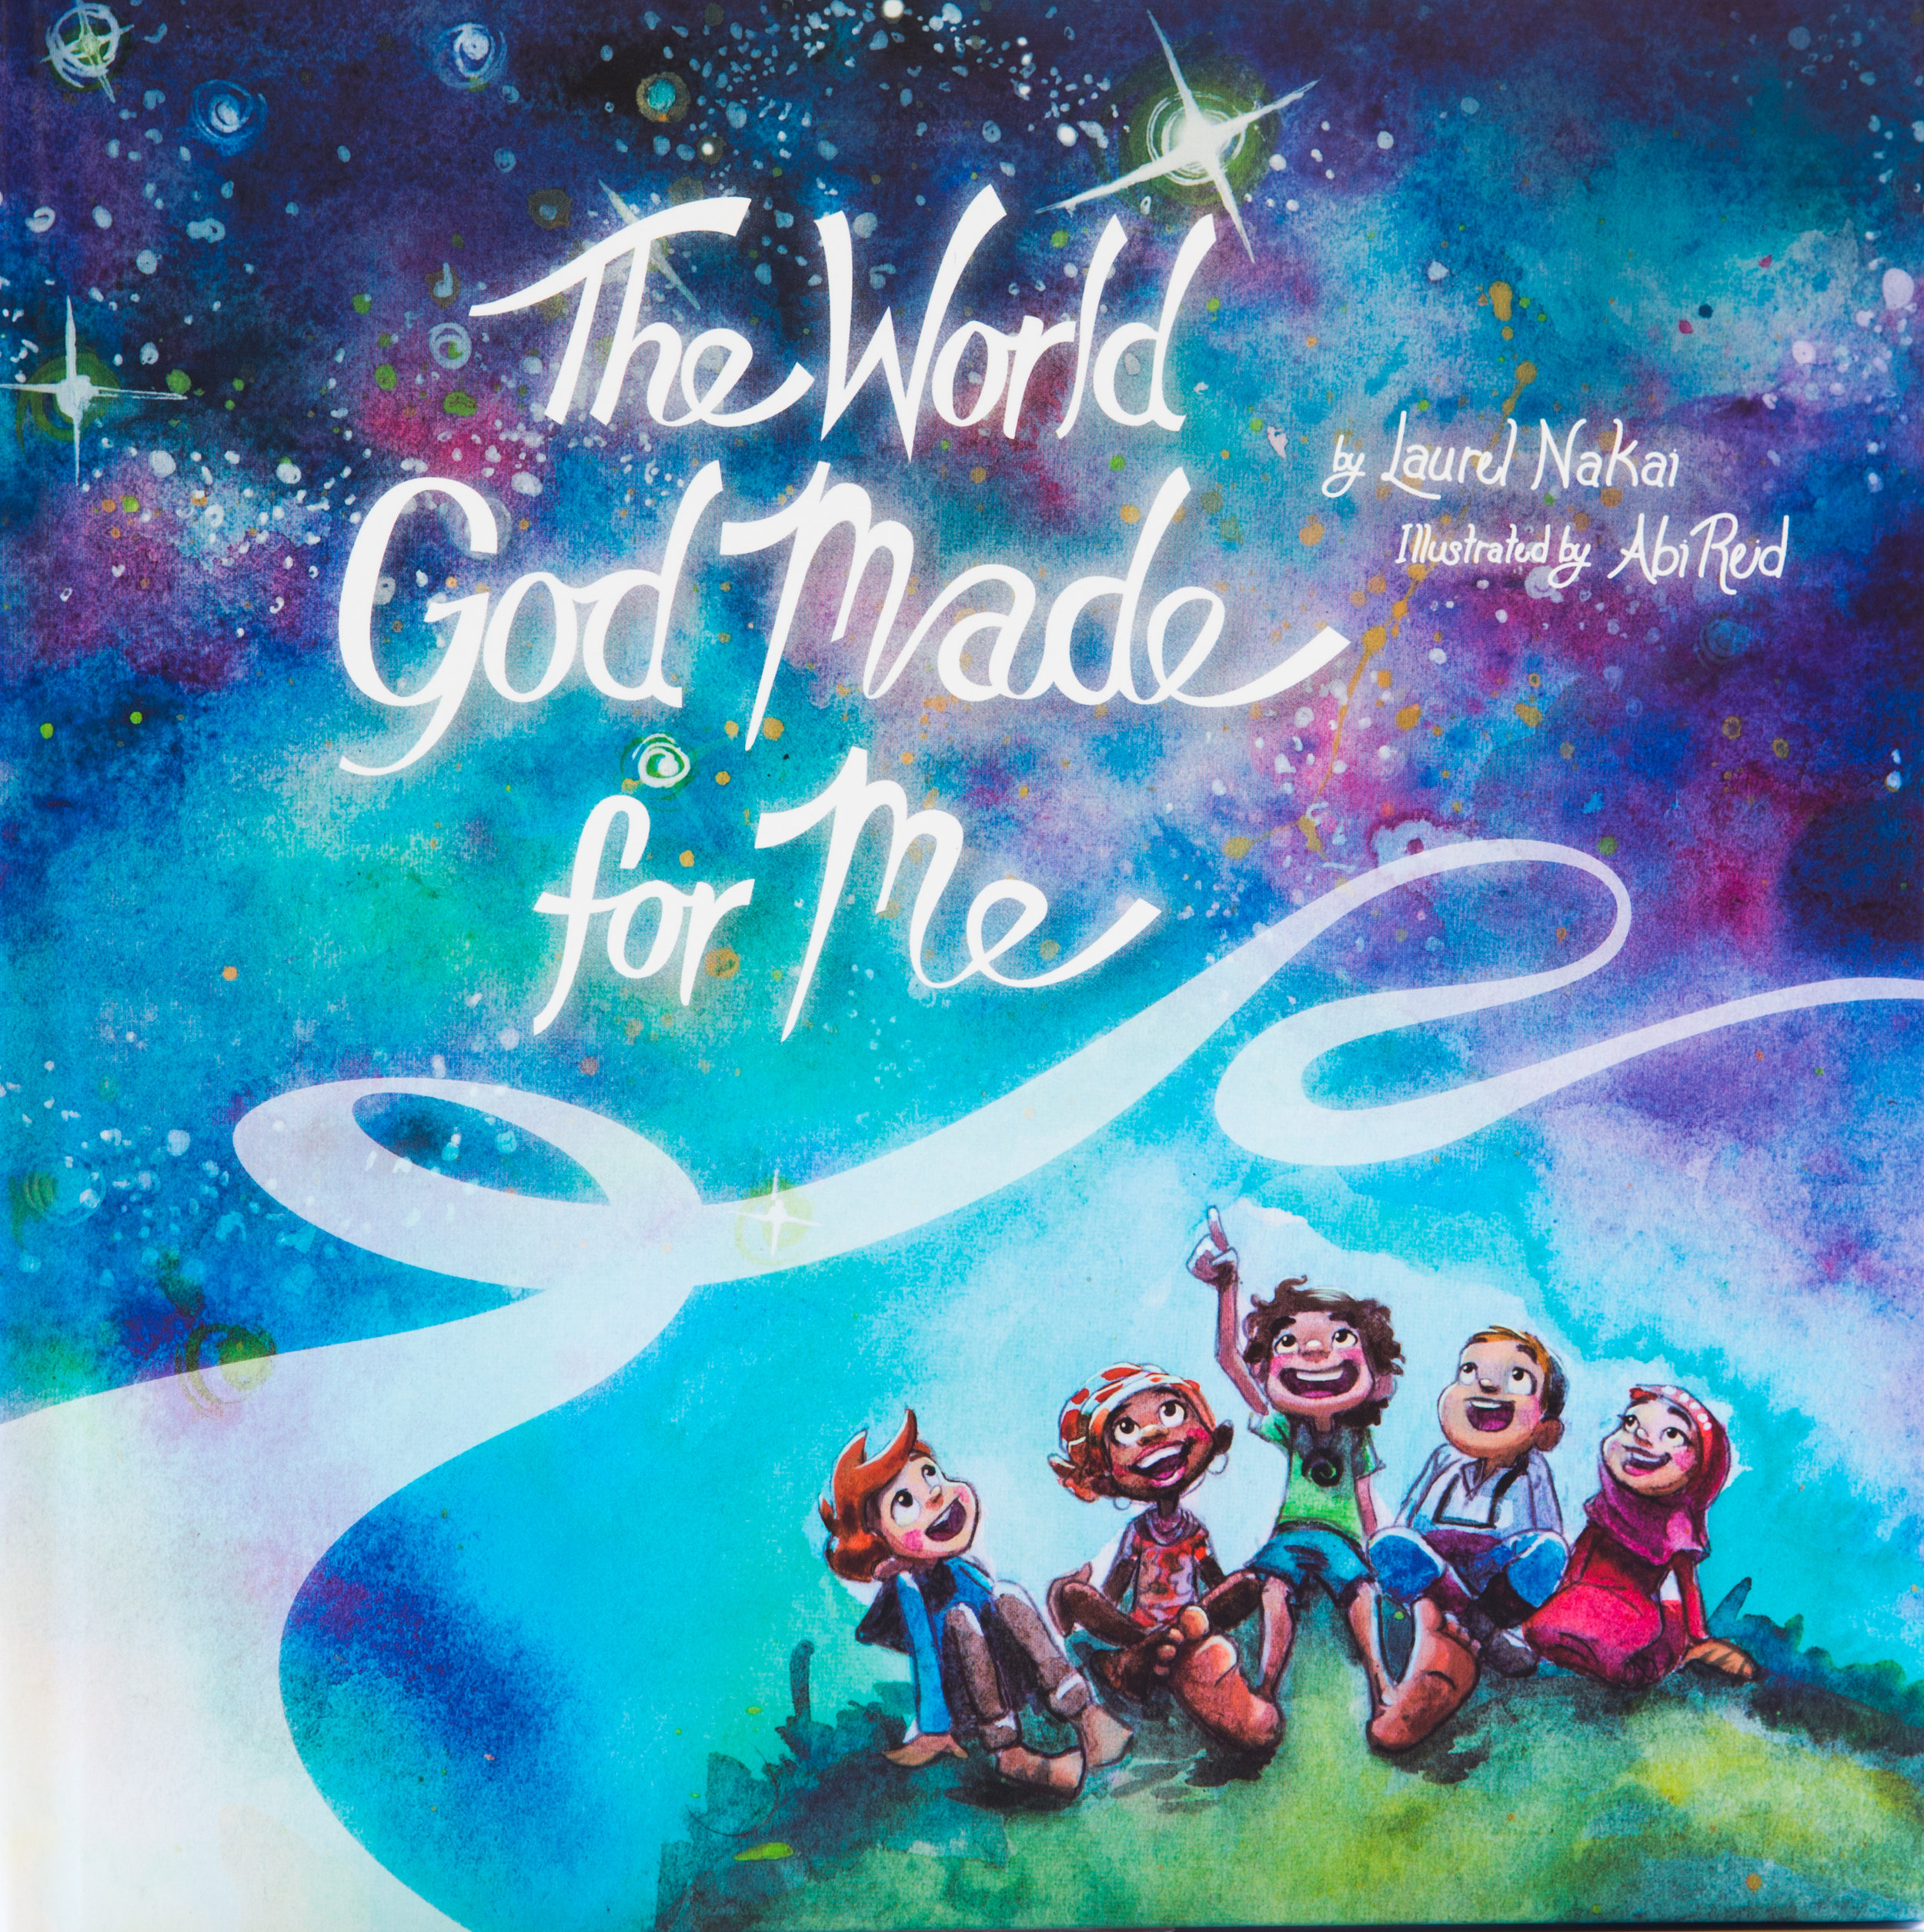 Latest Book!The World God Made for Me - Trying to teach your young child about God in a kid friendly way?This beautifully illustrated kid's book about God is colorful,fun, and reminds kids that God exists in all of creation.Get to know other faiths or start a conversation about your ownWith a unique interfaith approach, parents and children can customize their experience and interact with each other.May this book bring joy, peace, and discovery to you and your little ones, whose natural curiosity and love help us to see the divine in all things.